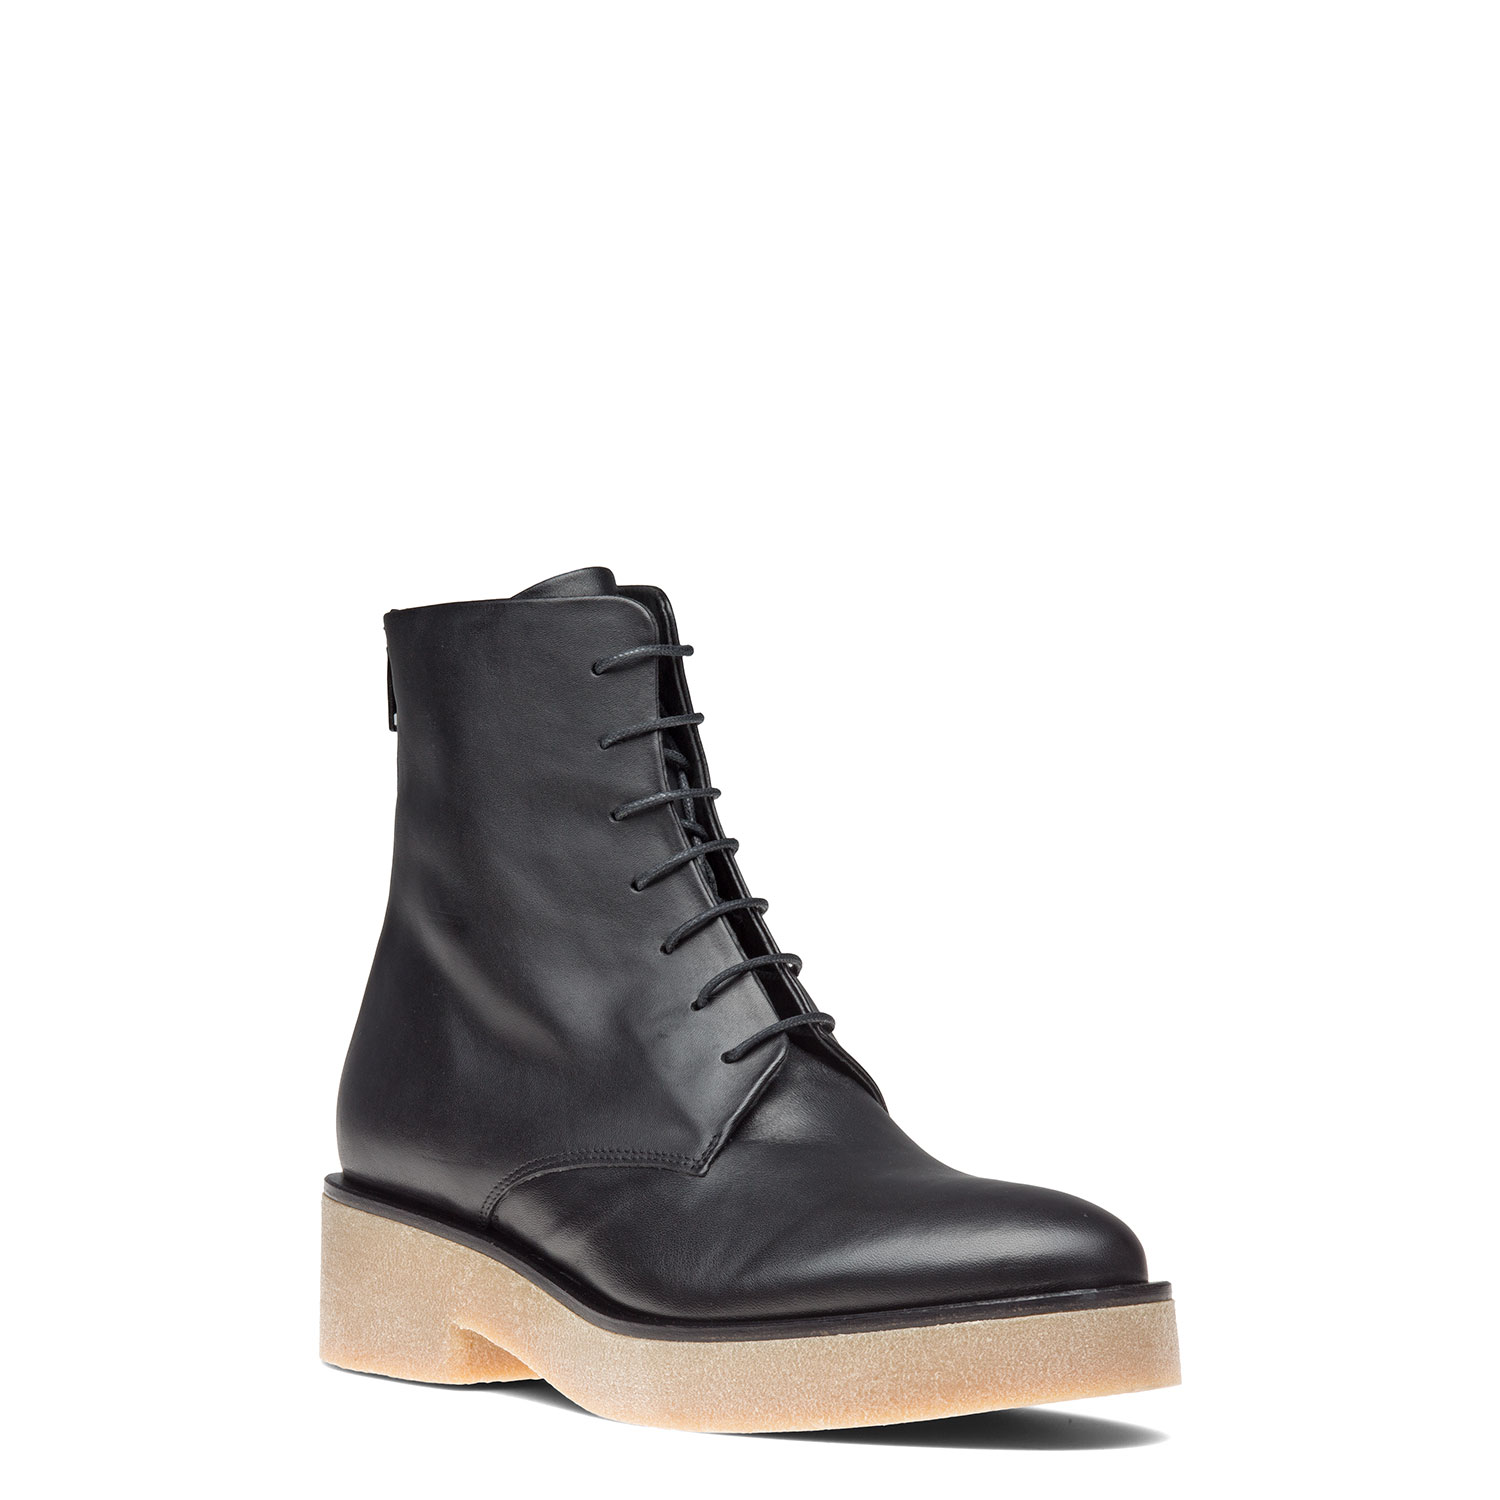 Women's ankle boots CARLO PAZOLINI BE-X0100-1